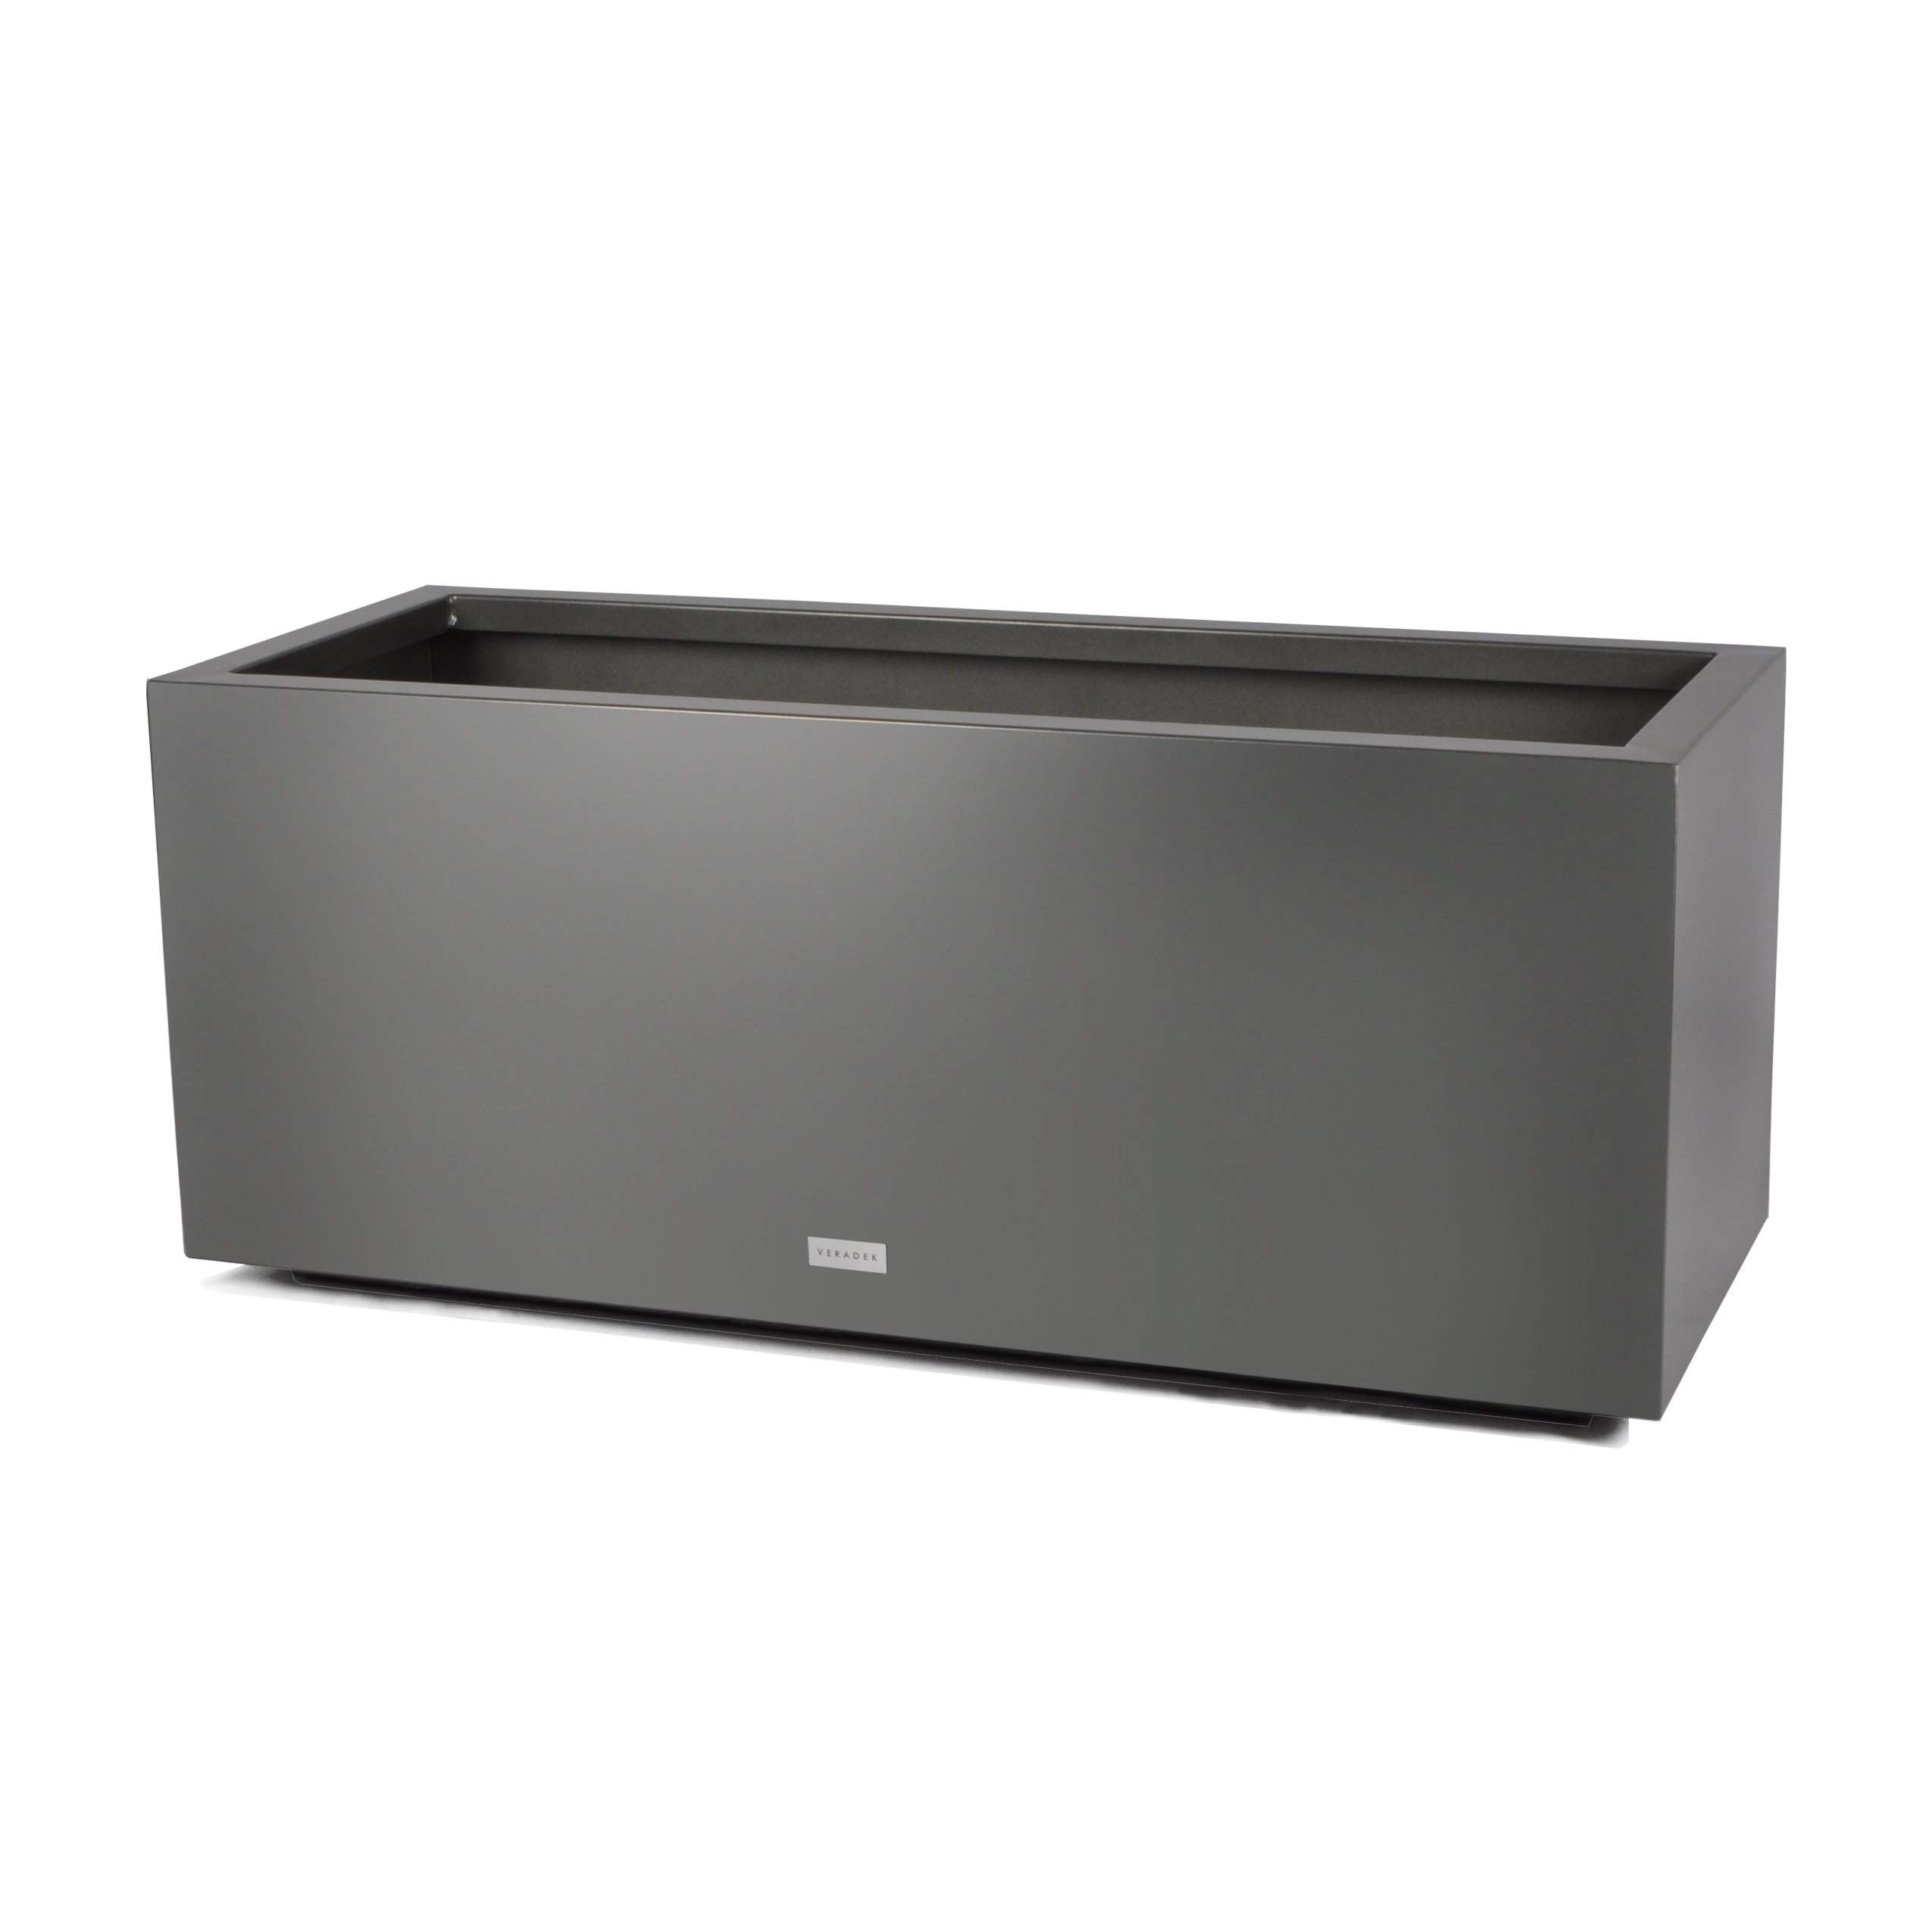 Metallic Series Long Box Planter-Outdoor Planters-Veradek-Small-Grey-Veradek